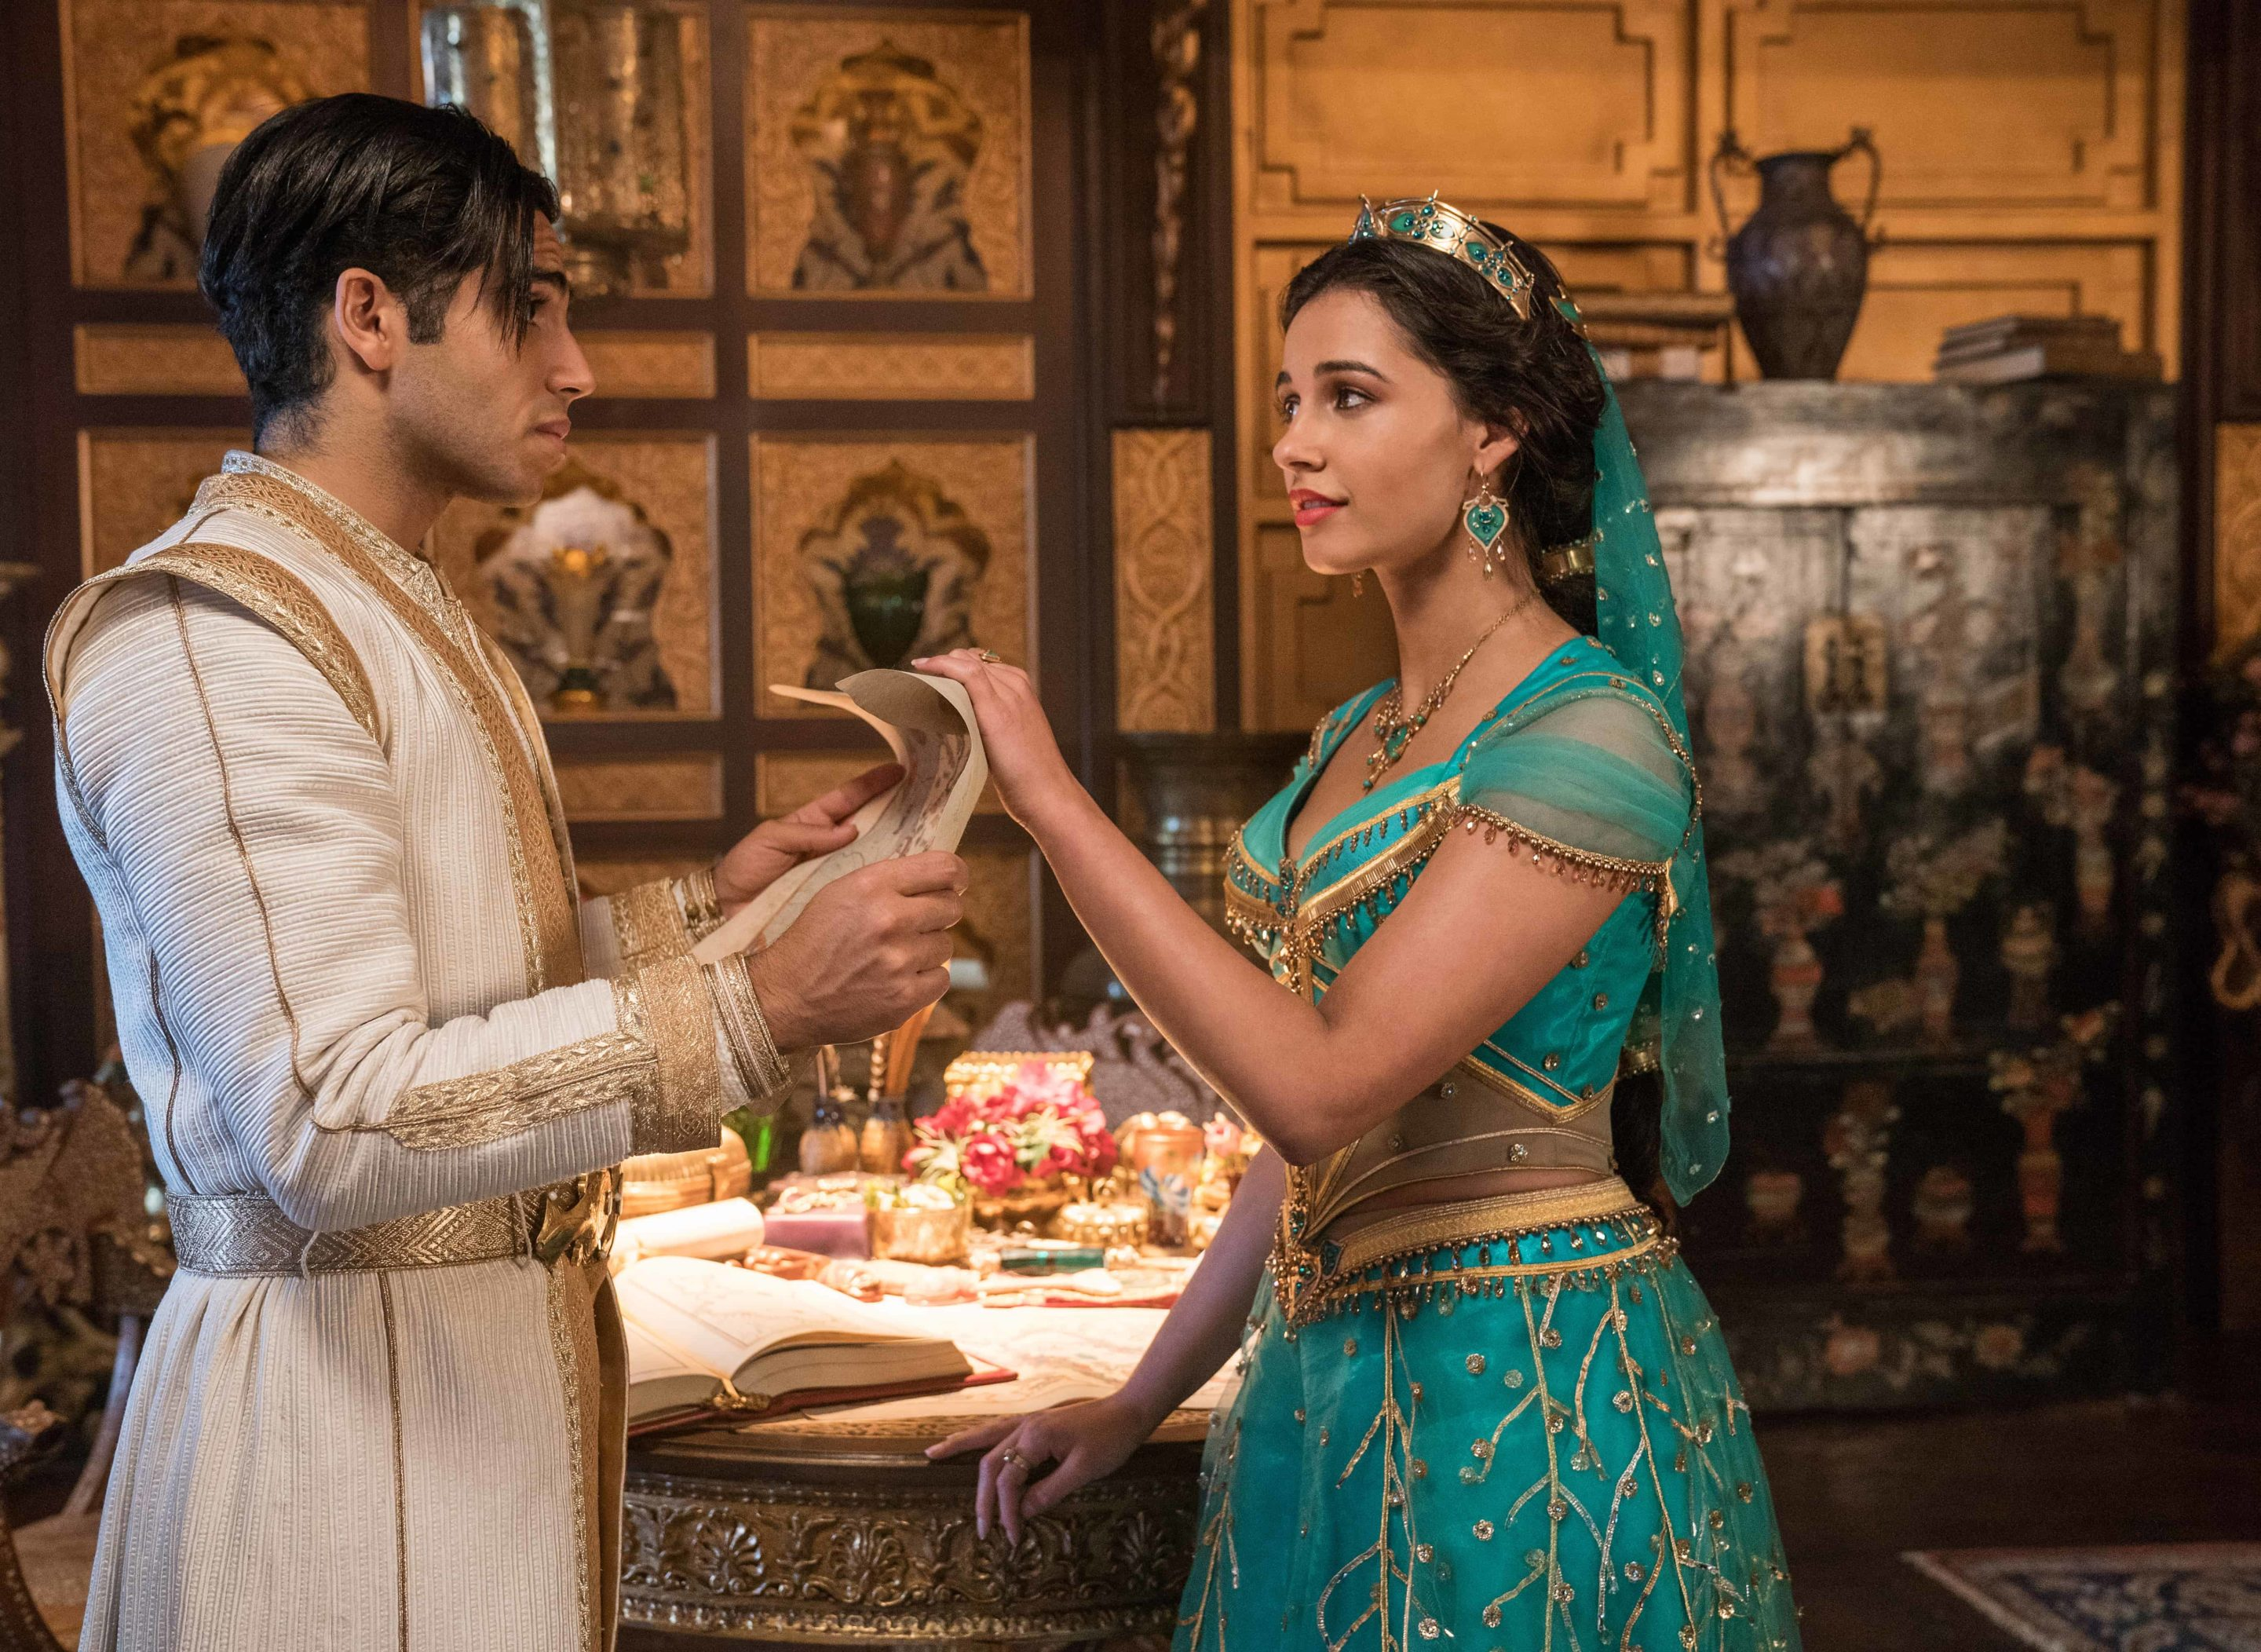 Naomi Scott as Jasmine in Aladdin